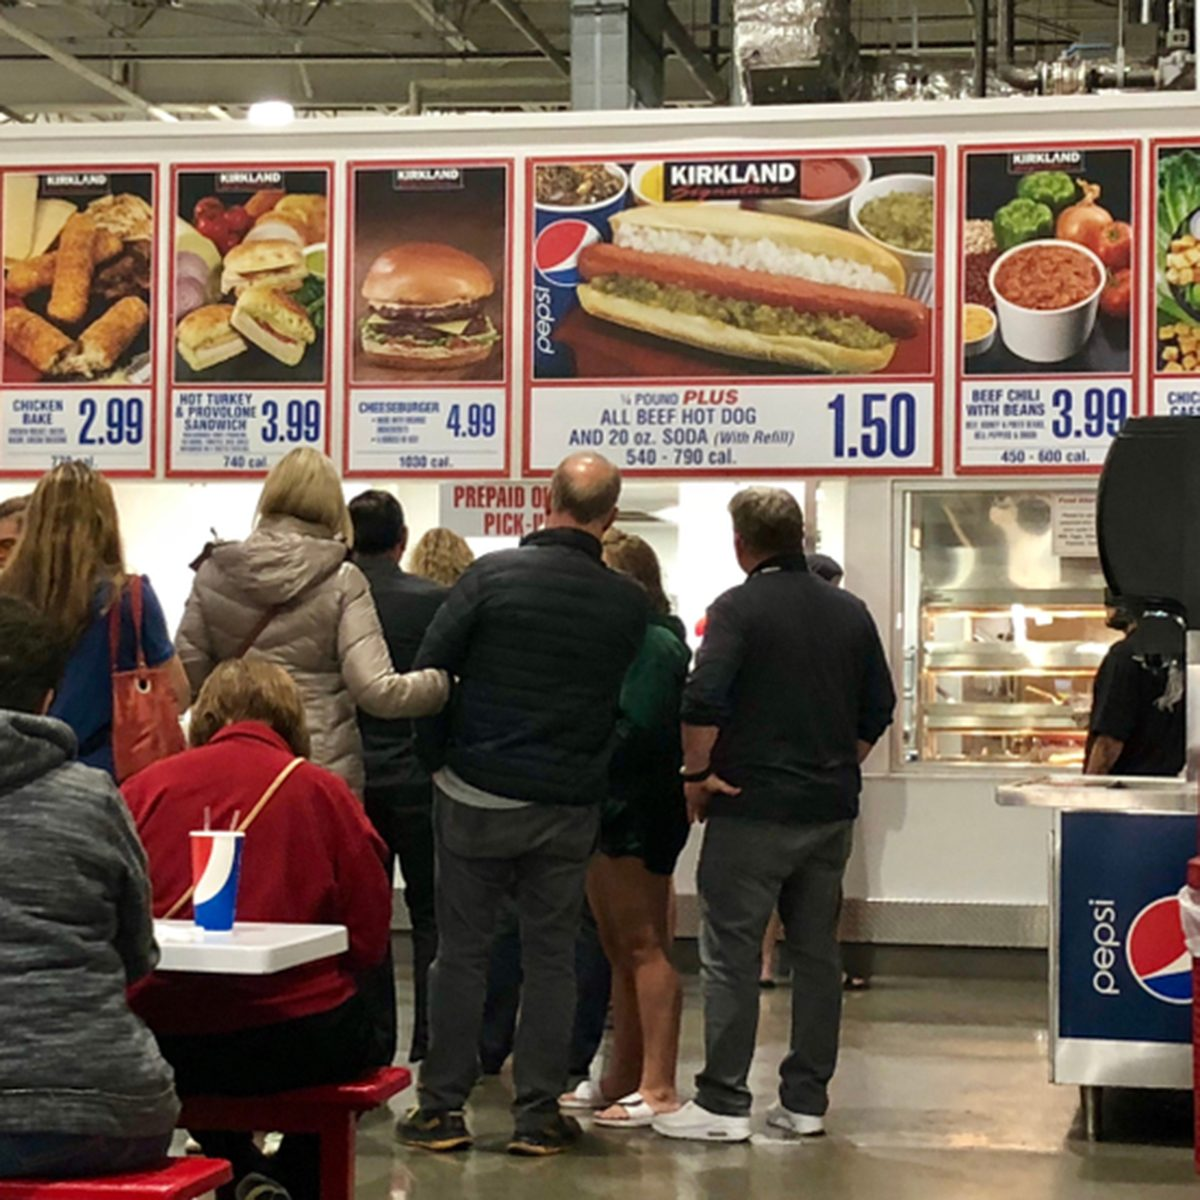 20 Things You Never Knew About Costco Food Courts | Taste of